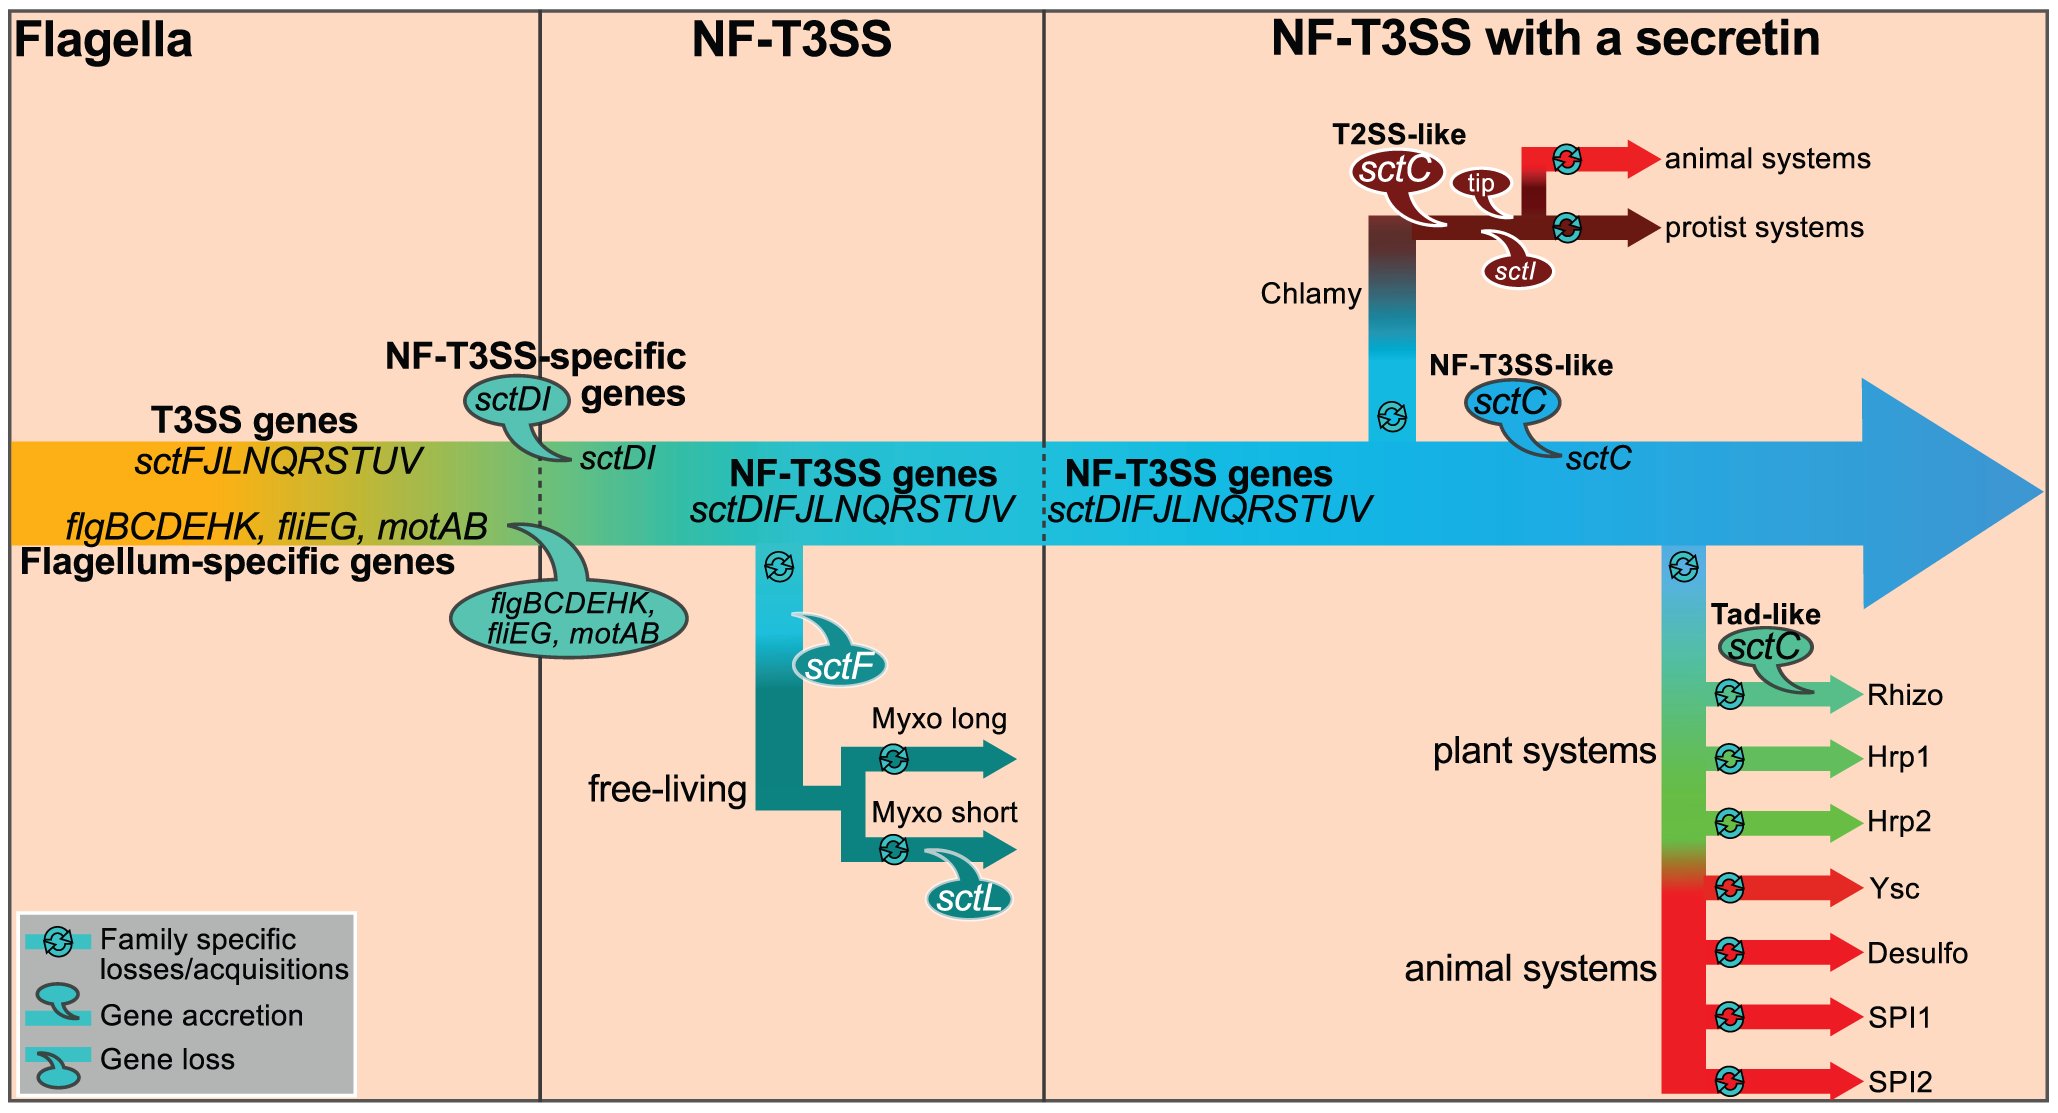 Proposed scenario for the evolution of NF-T3SS.